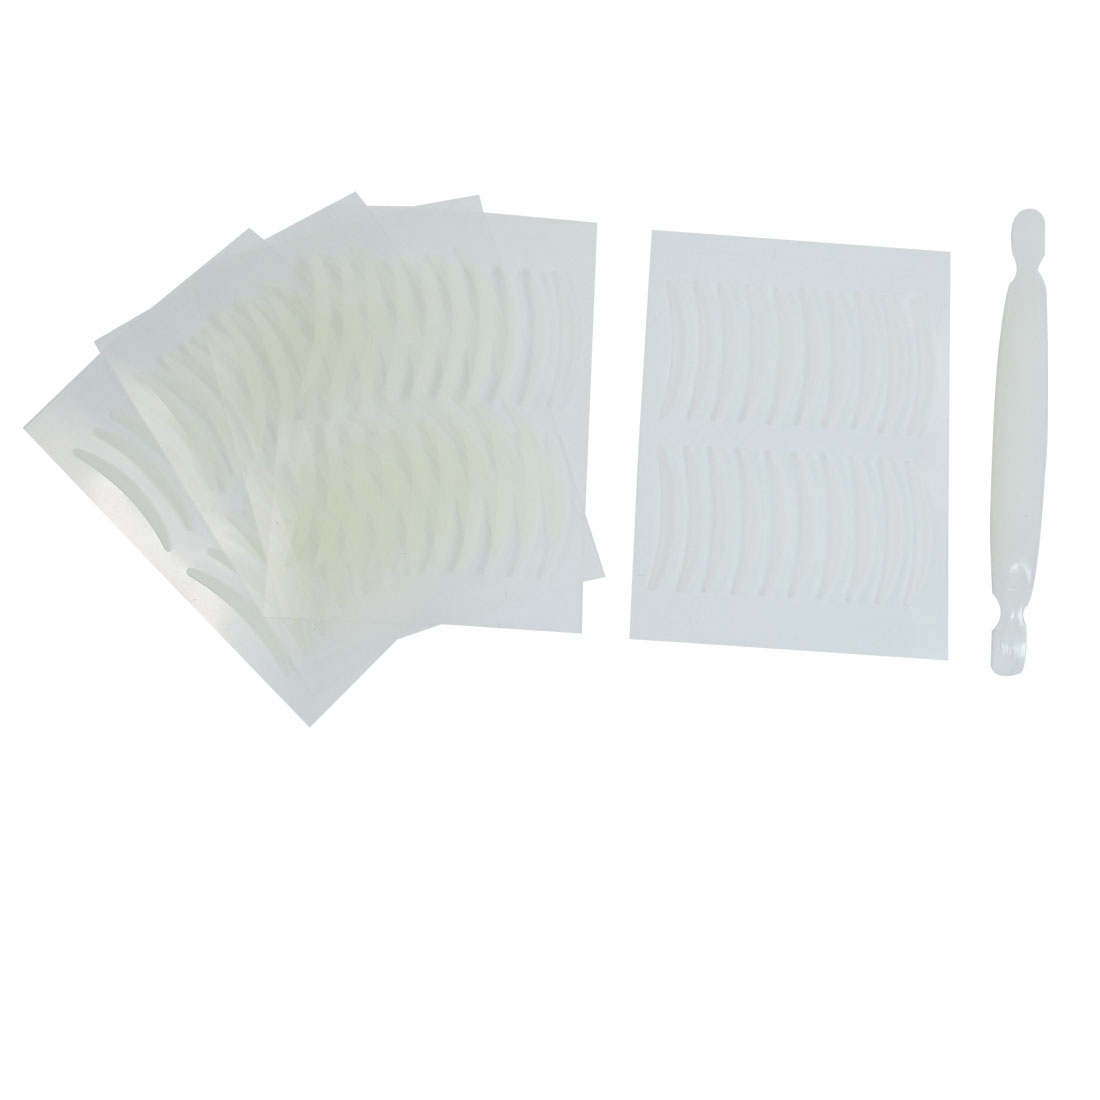 100 Pairs Adhesive Beige Soft Plastic Double Eyelid Tape Stickers